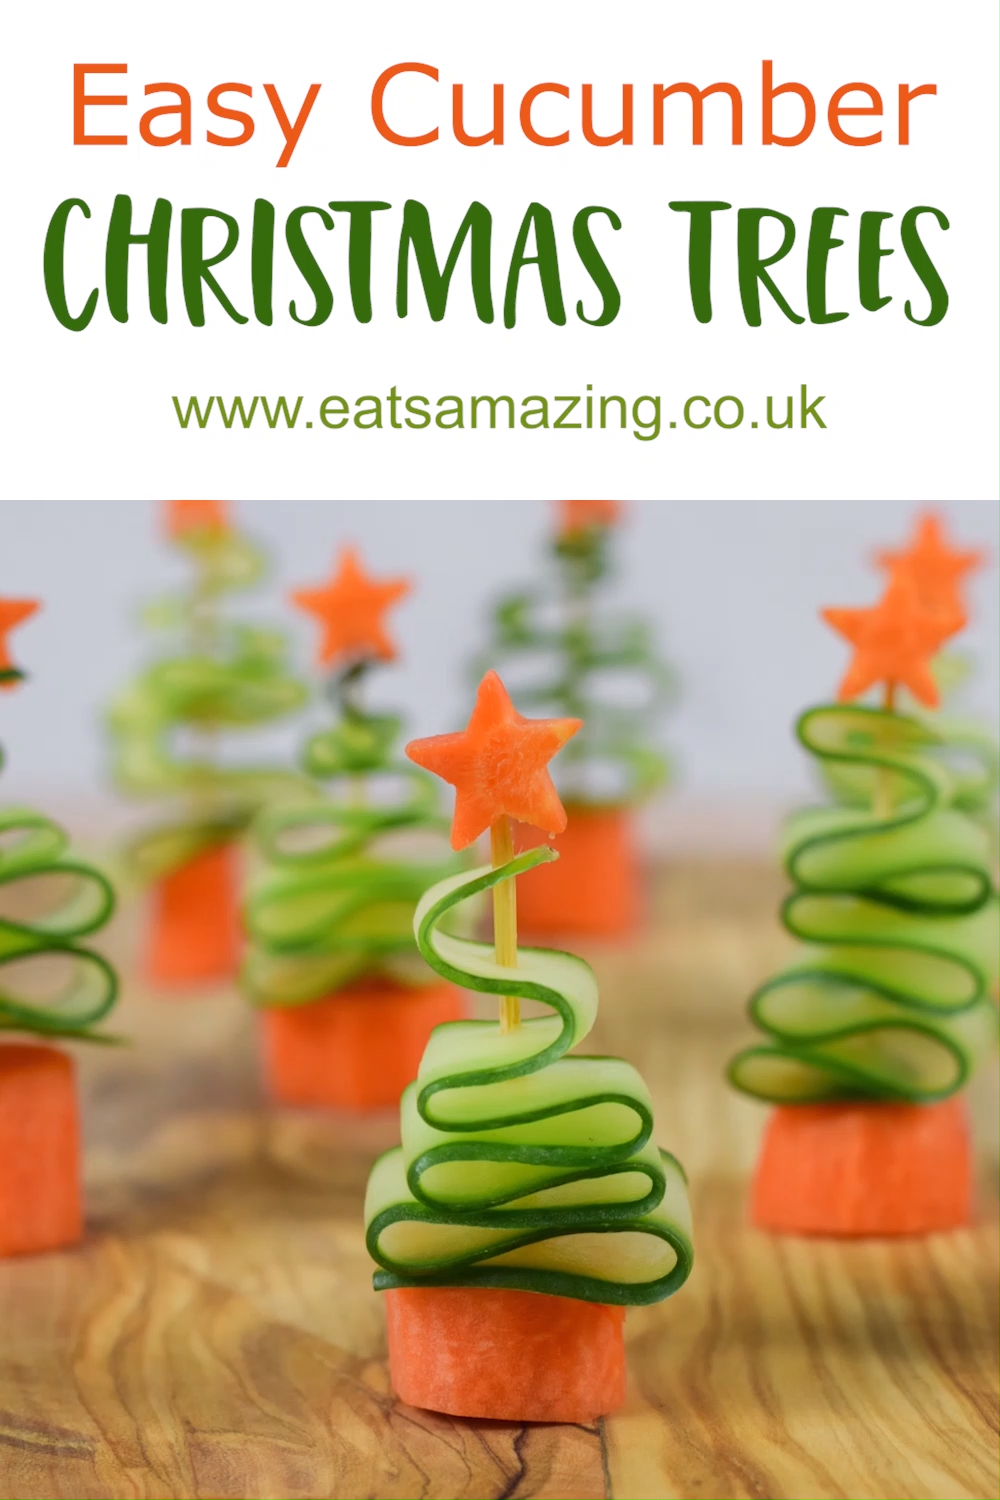 Easy Cucumber Christmas Trees Recipe